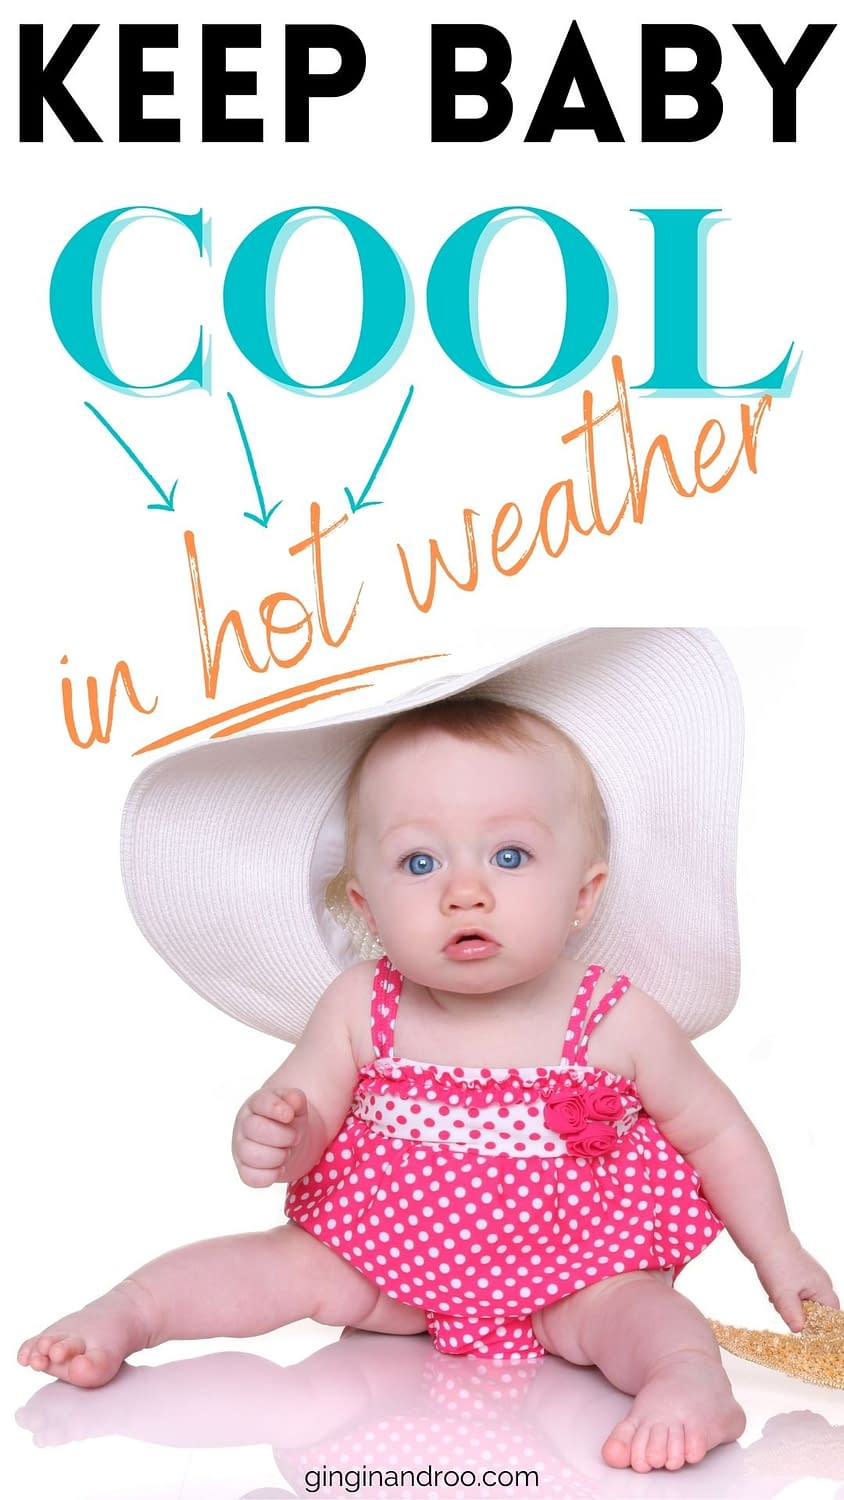 How to Keep Baby Cool in Summer - image of a baby with a cartoon sunshine